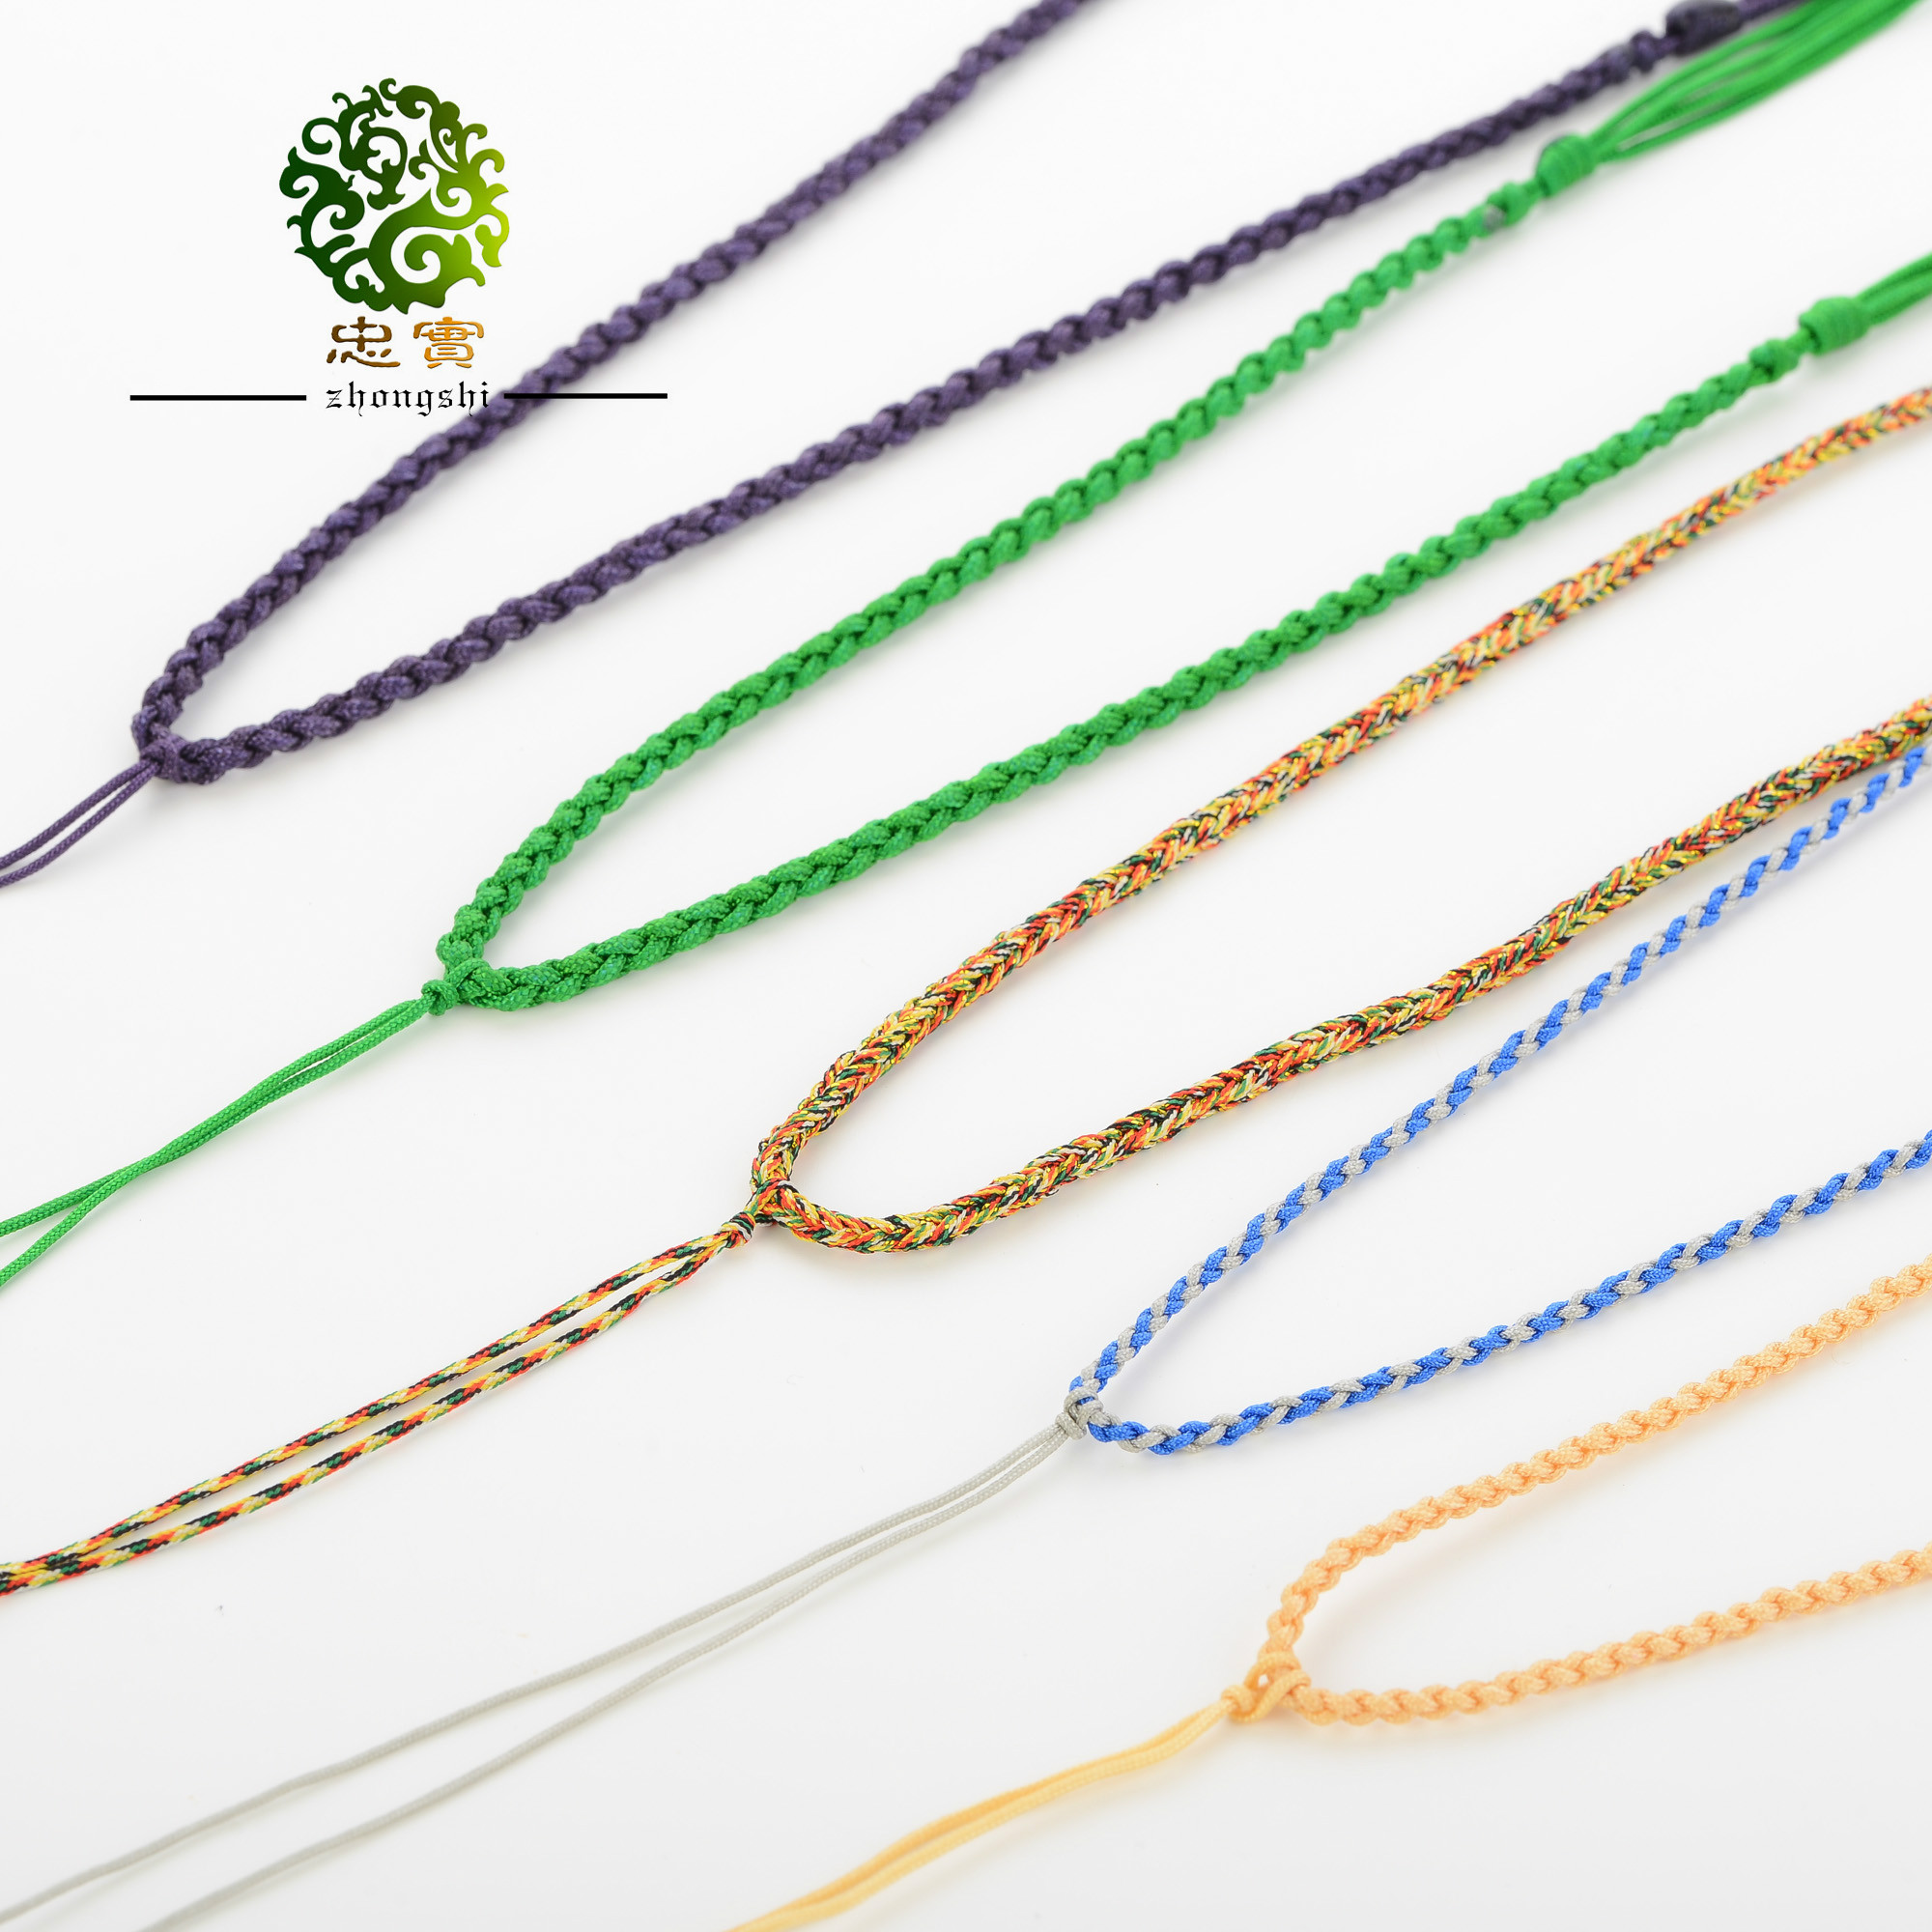 China Pendant Wire Rope, China Pendant Wire Rope Shopping Guide at ...